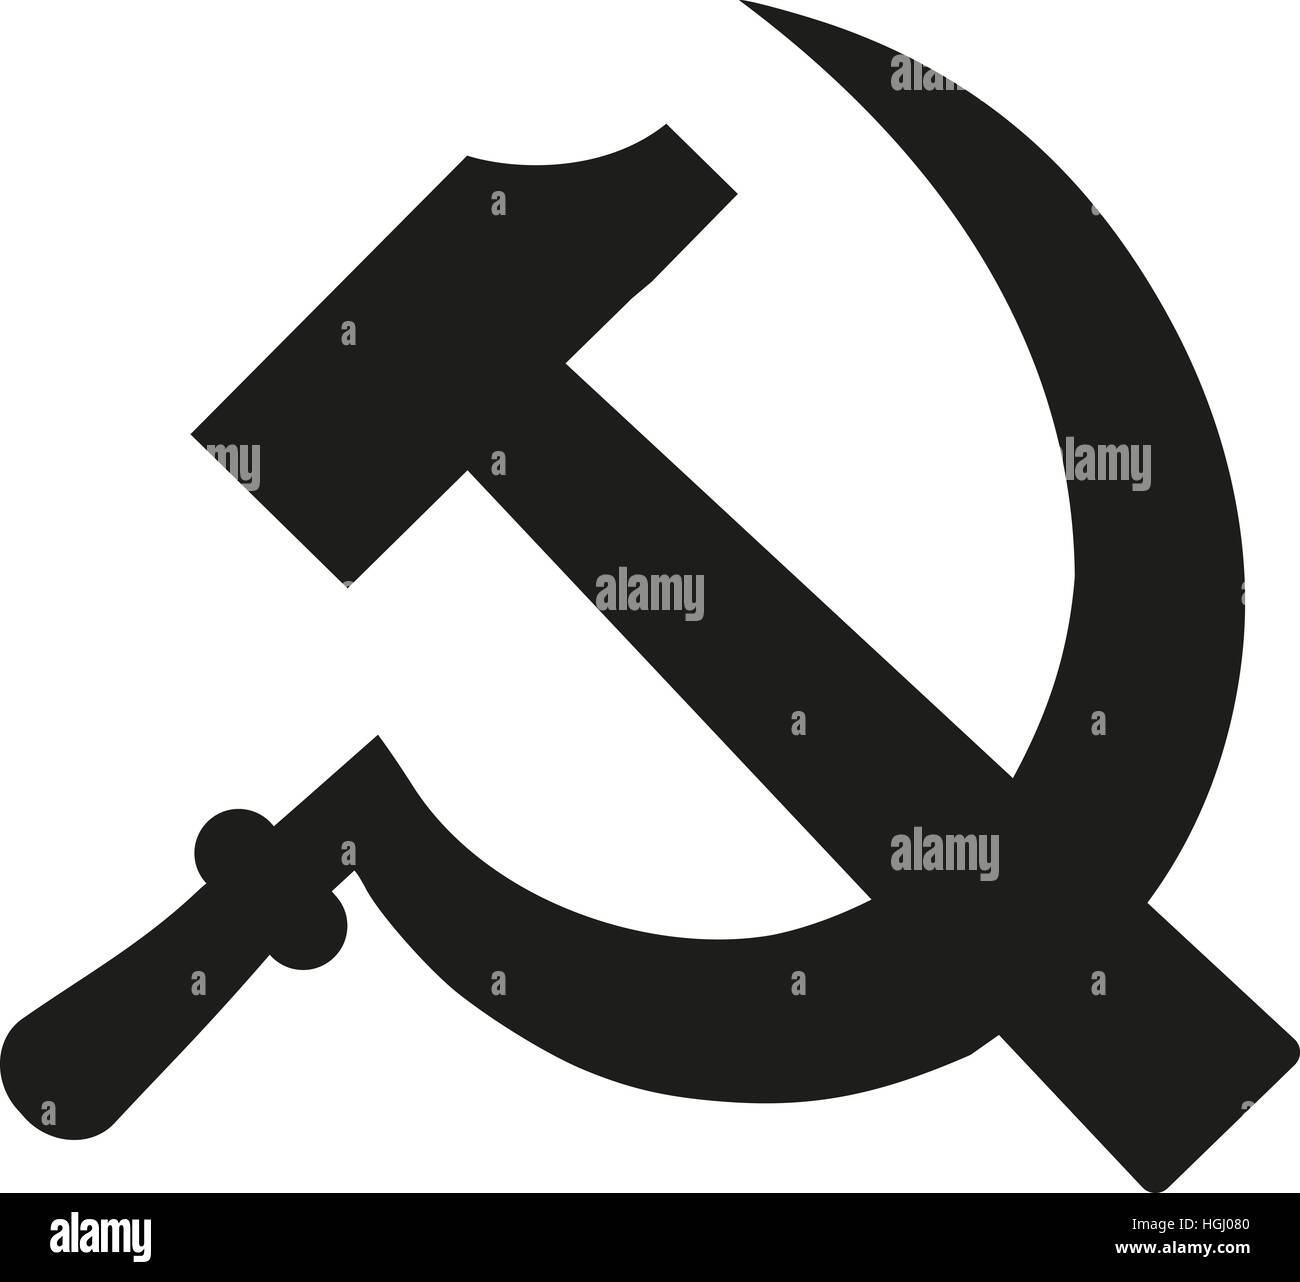 Symbol Of Communism Cut Out Stock Images Pictures Alamy